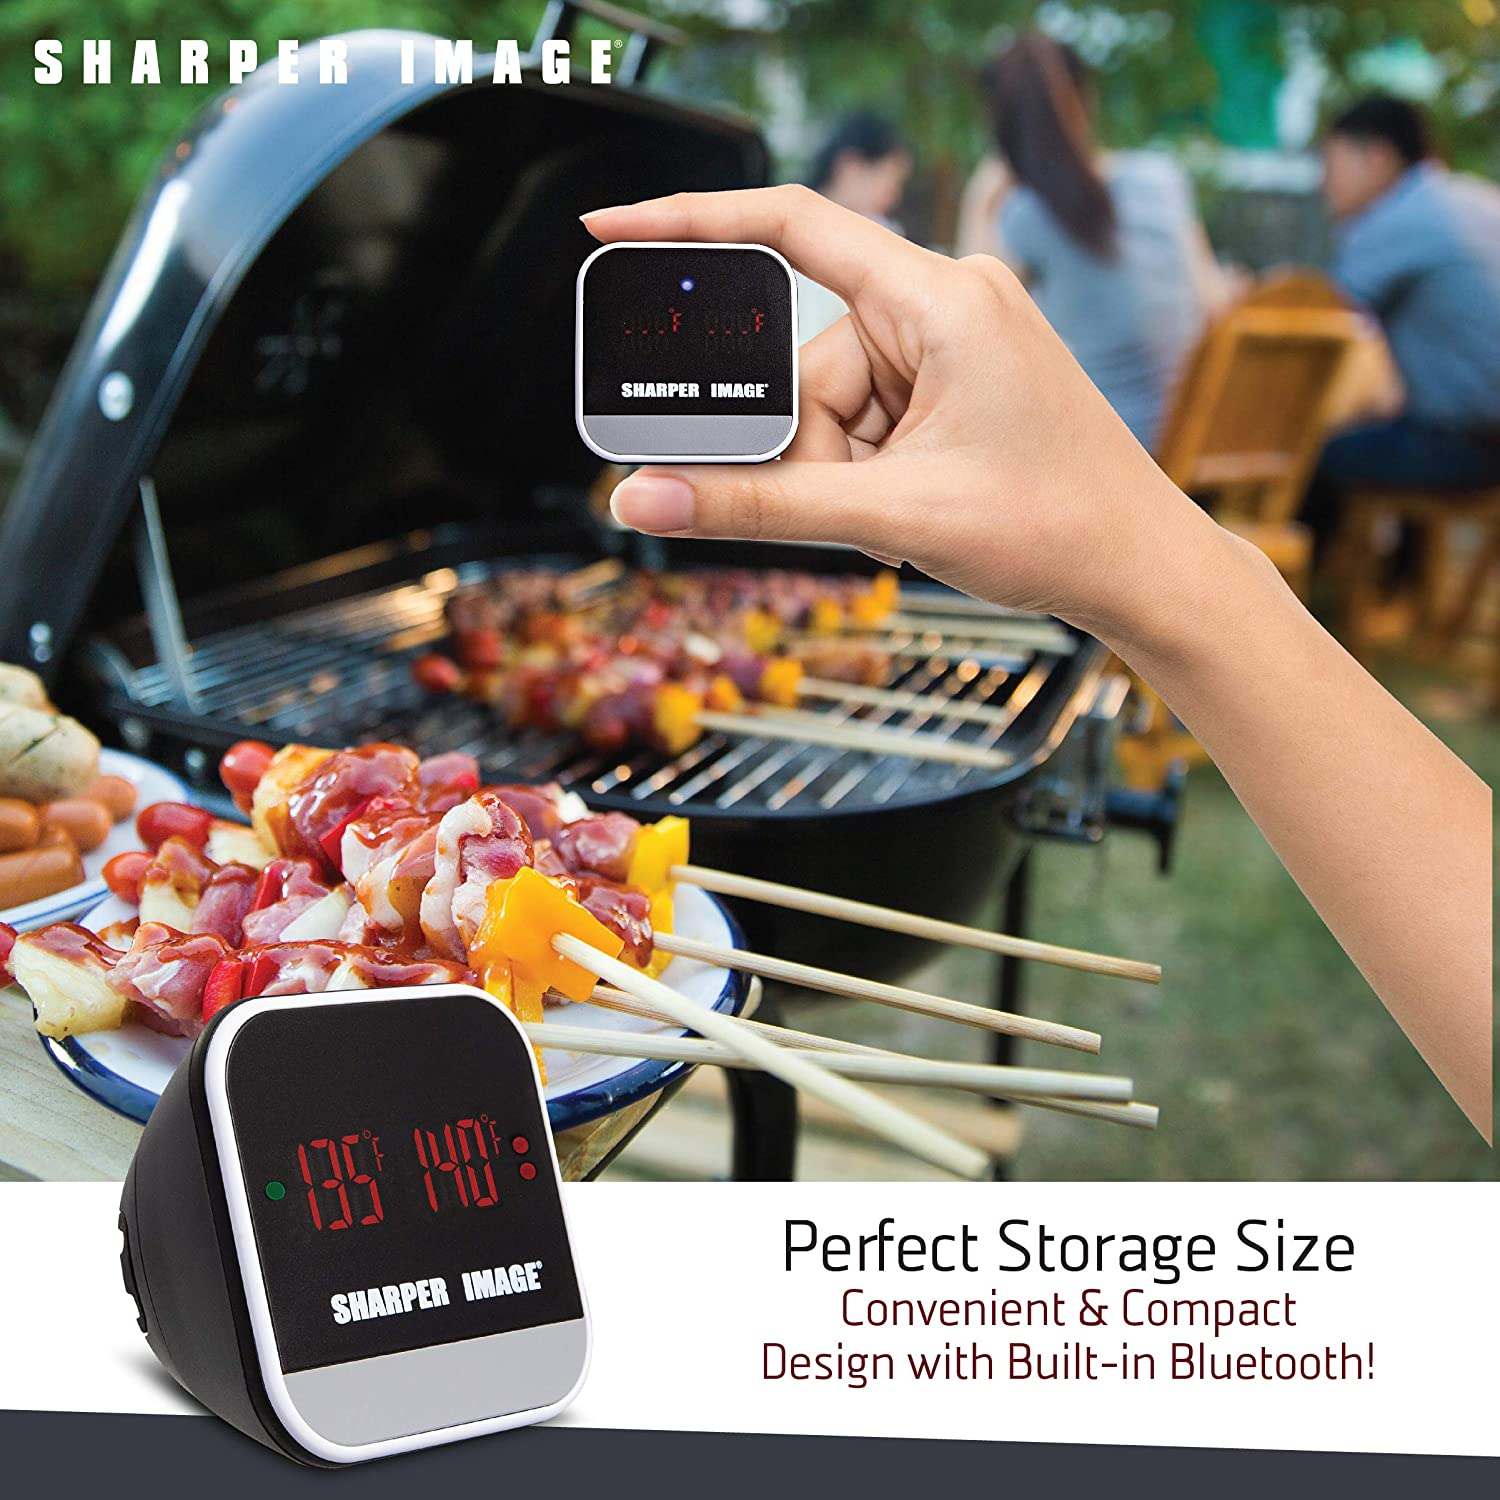 Meat Probes Plus Pairing Indicator Ensure Doneness Heat Resistant iOS//Android Capability W//App Great for BBQs//Oven Sharper Image Bluetooth Smartphone Grill Thermometer Easy Read Digital Display